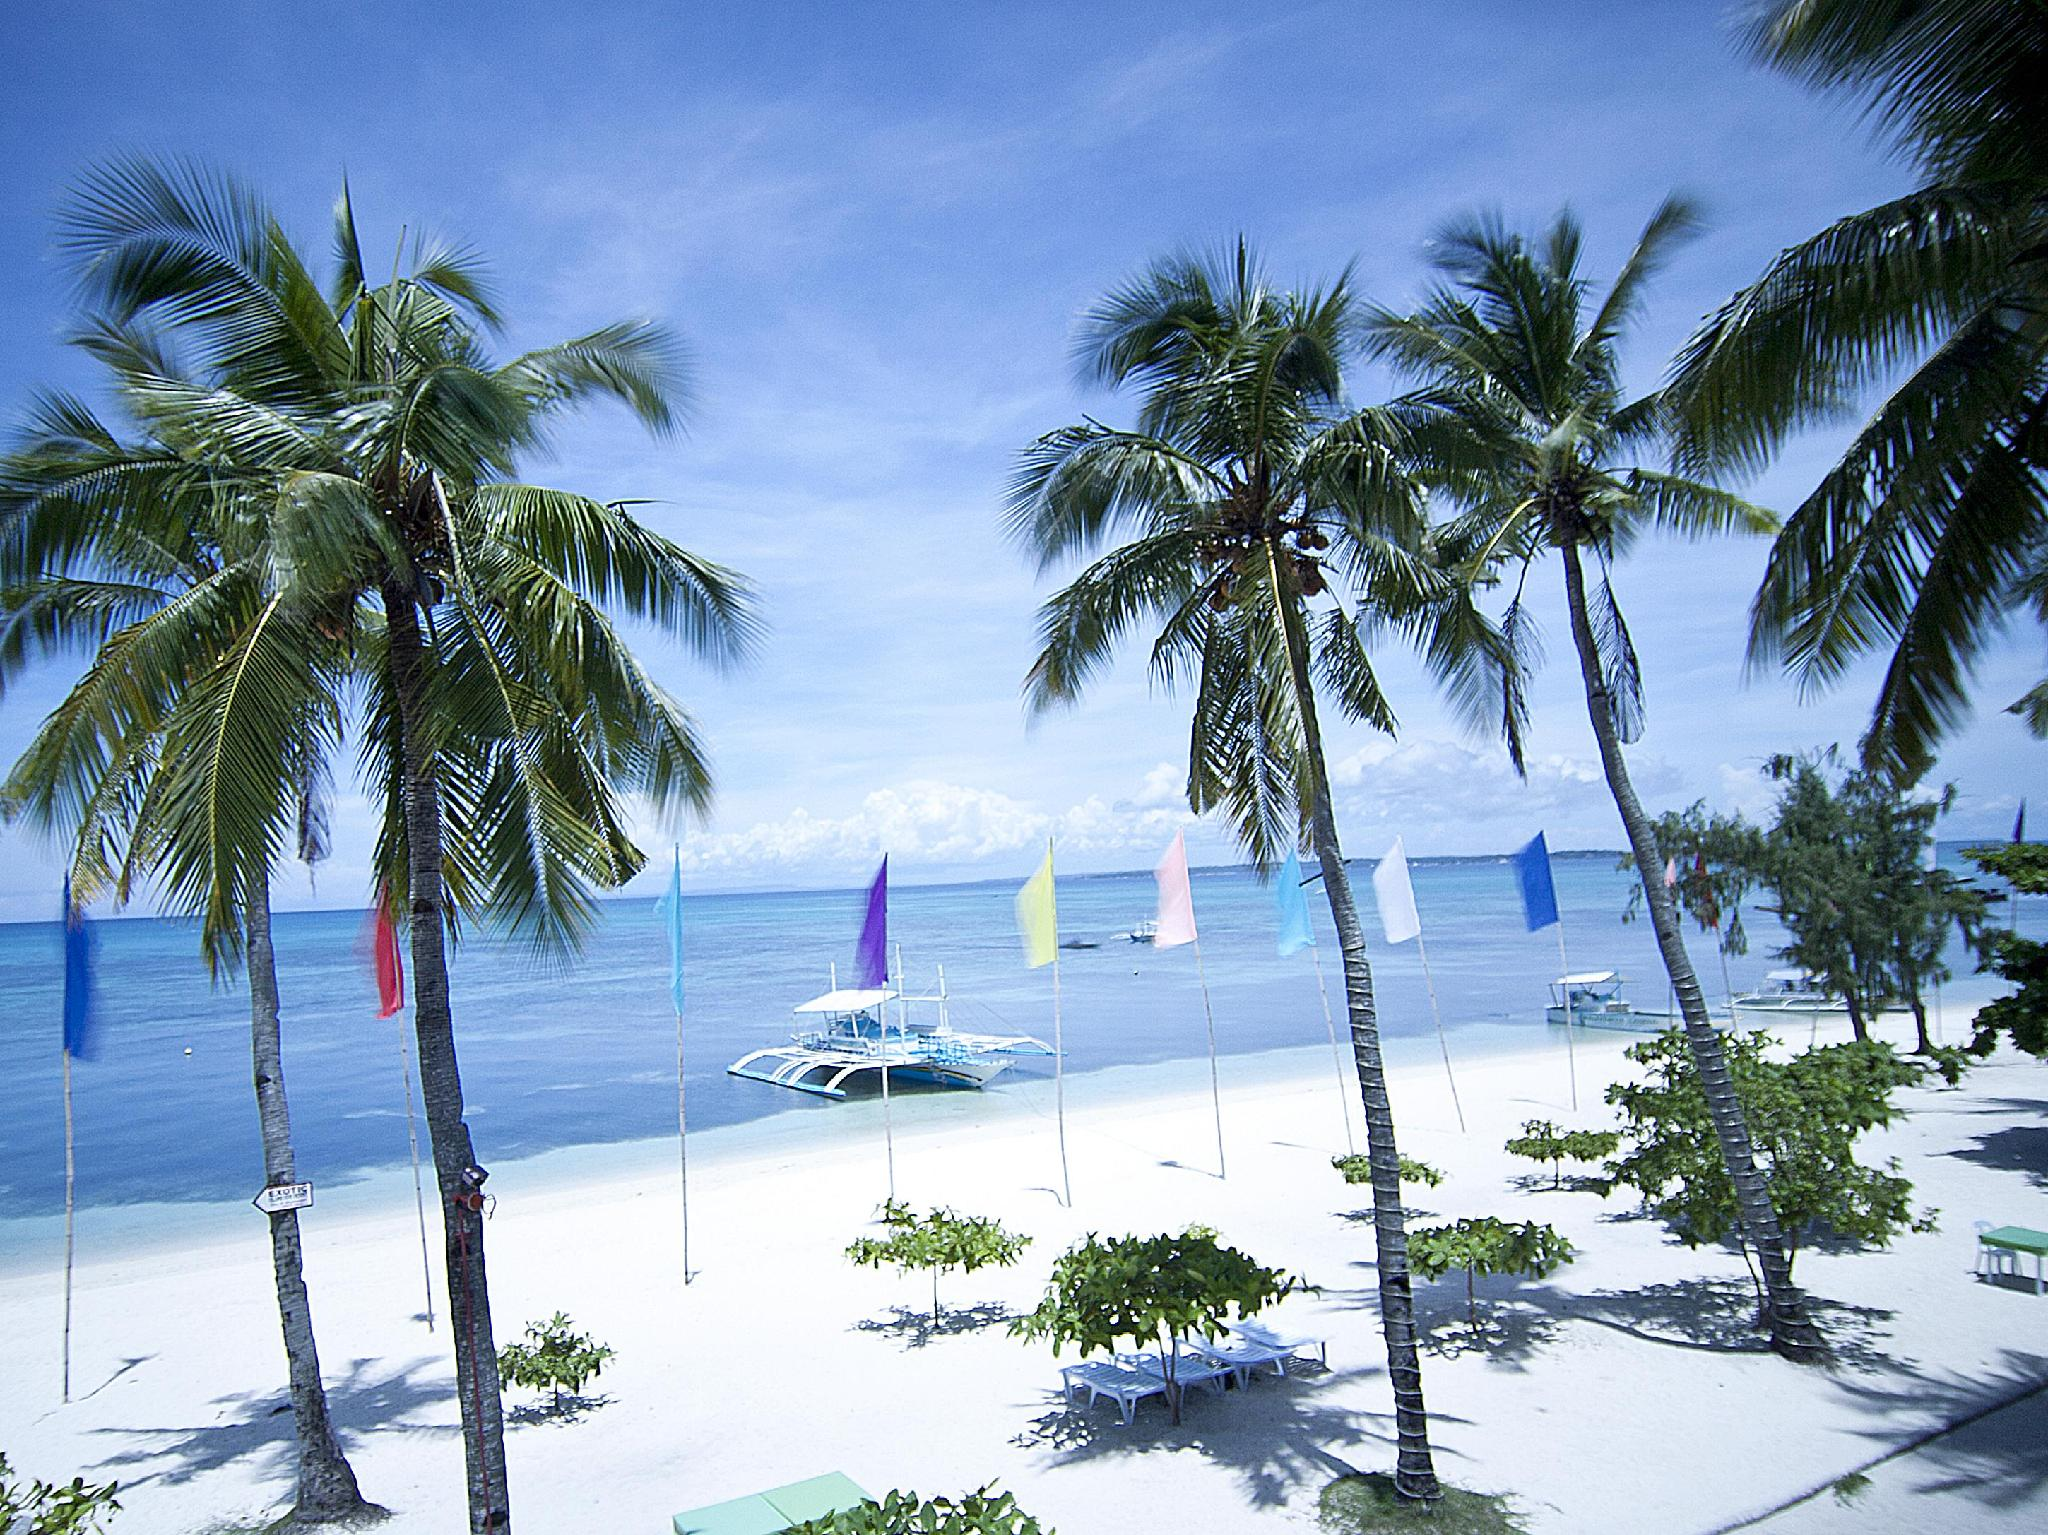 Malapascua Legend Water Sports and Resort Cebu City